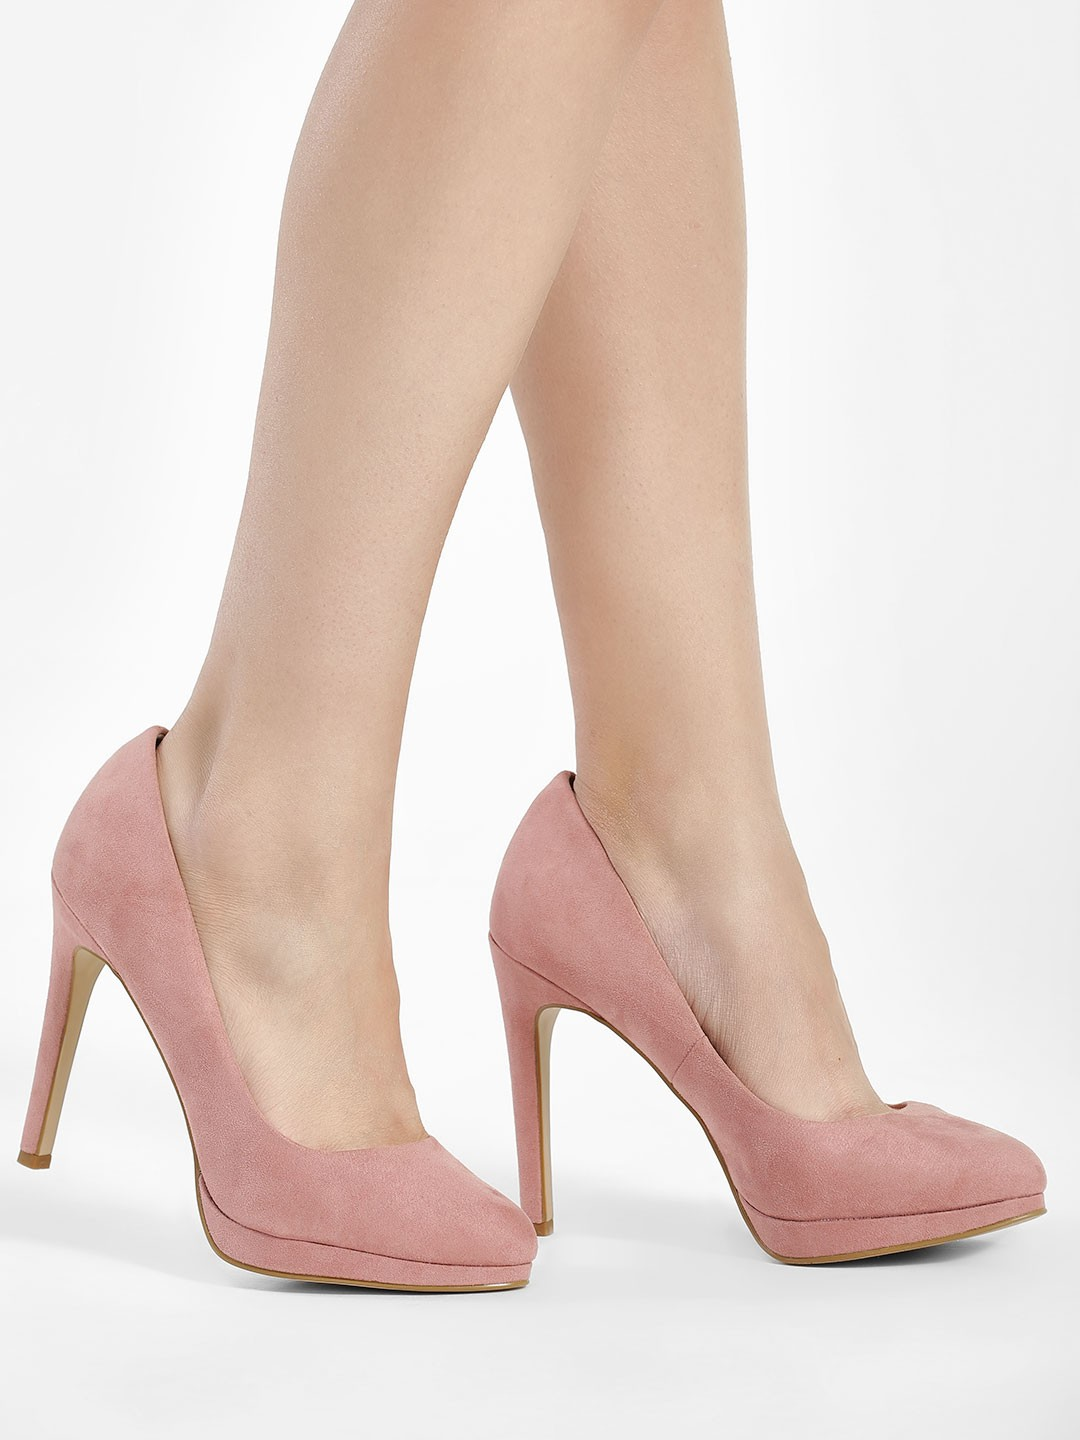 New Look Pink Suede Pumps 1